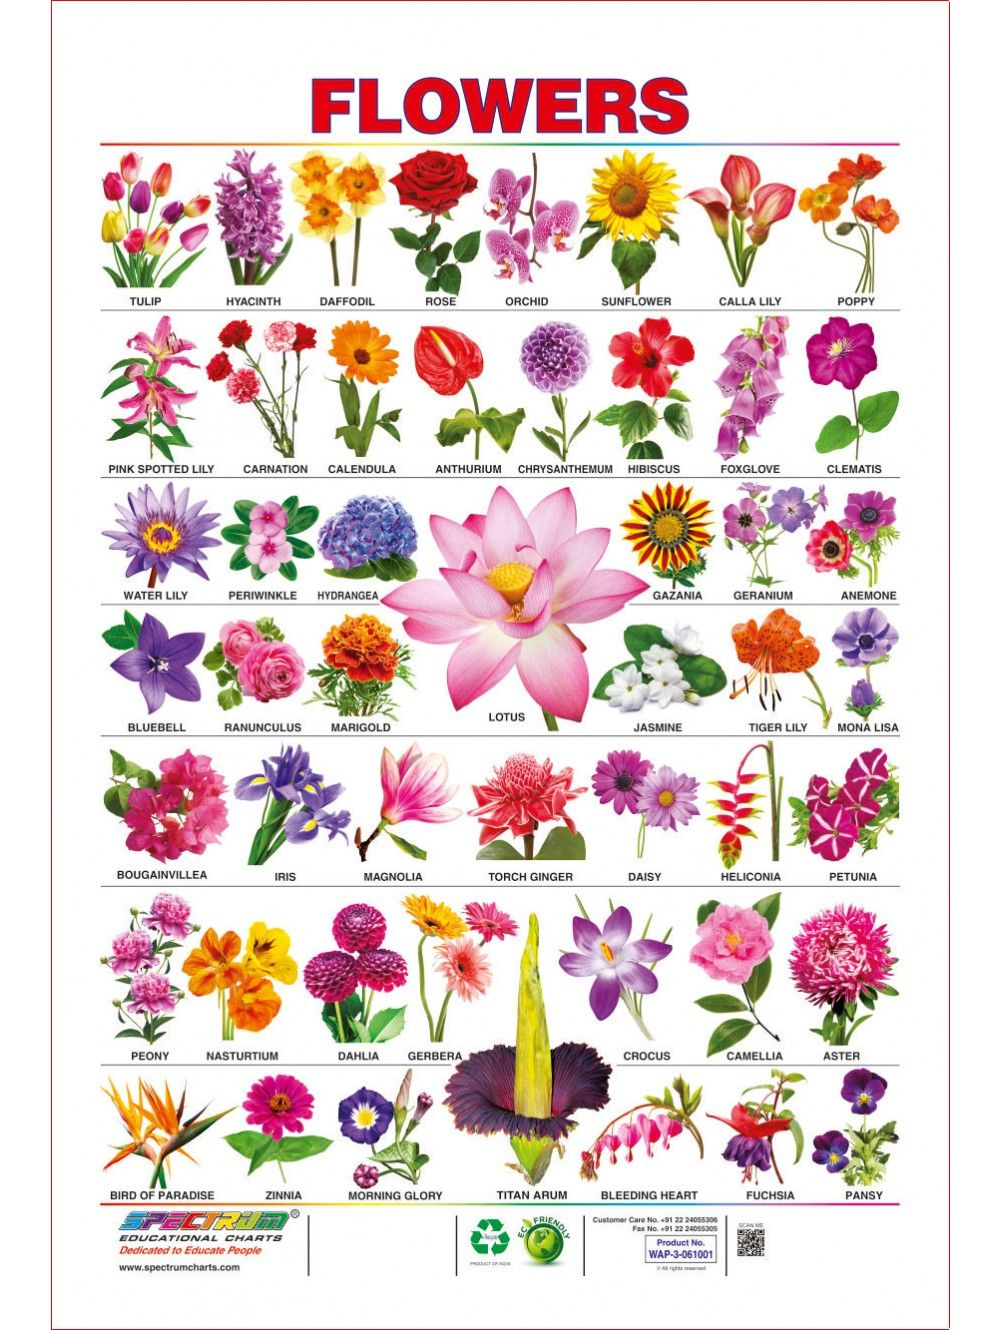 Pin By Joanna Karczewska On Design Resources Elements Pretty Flower Names Flower Images With Name Flowers Name List